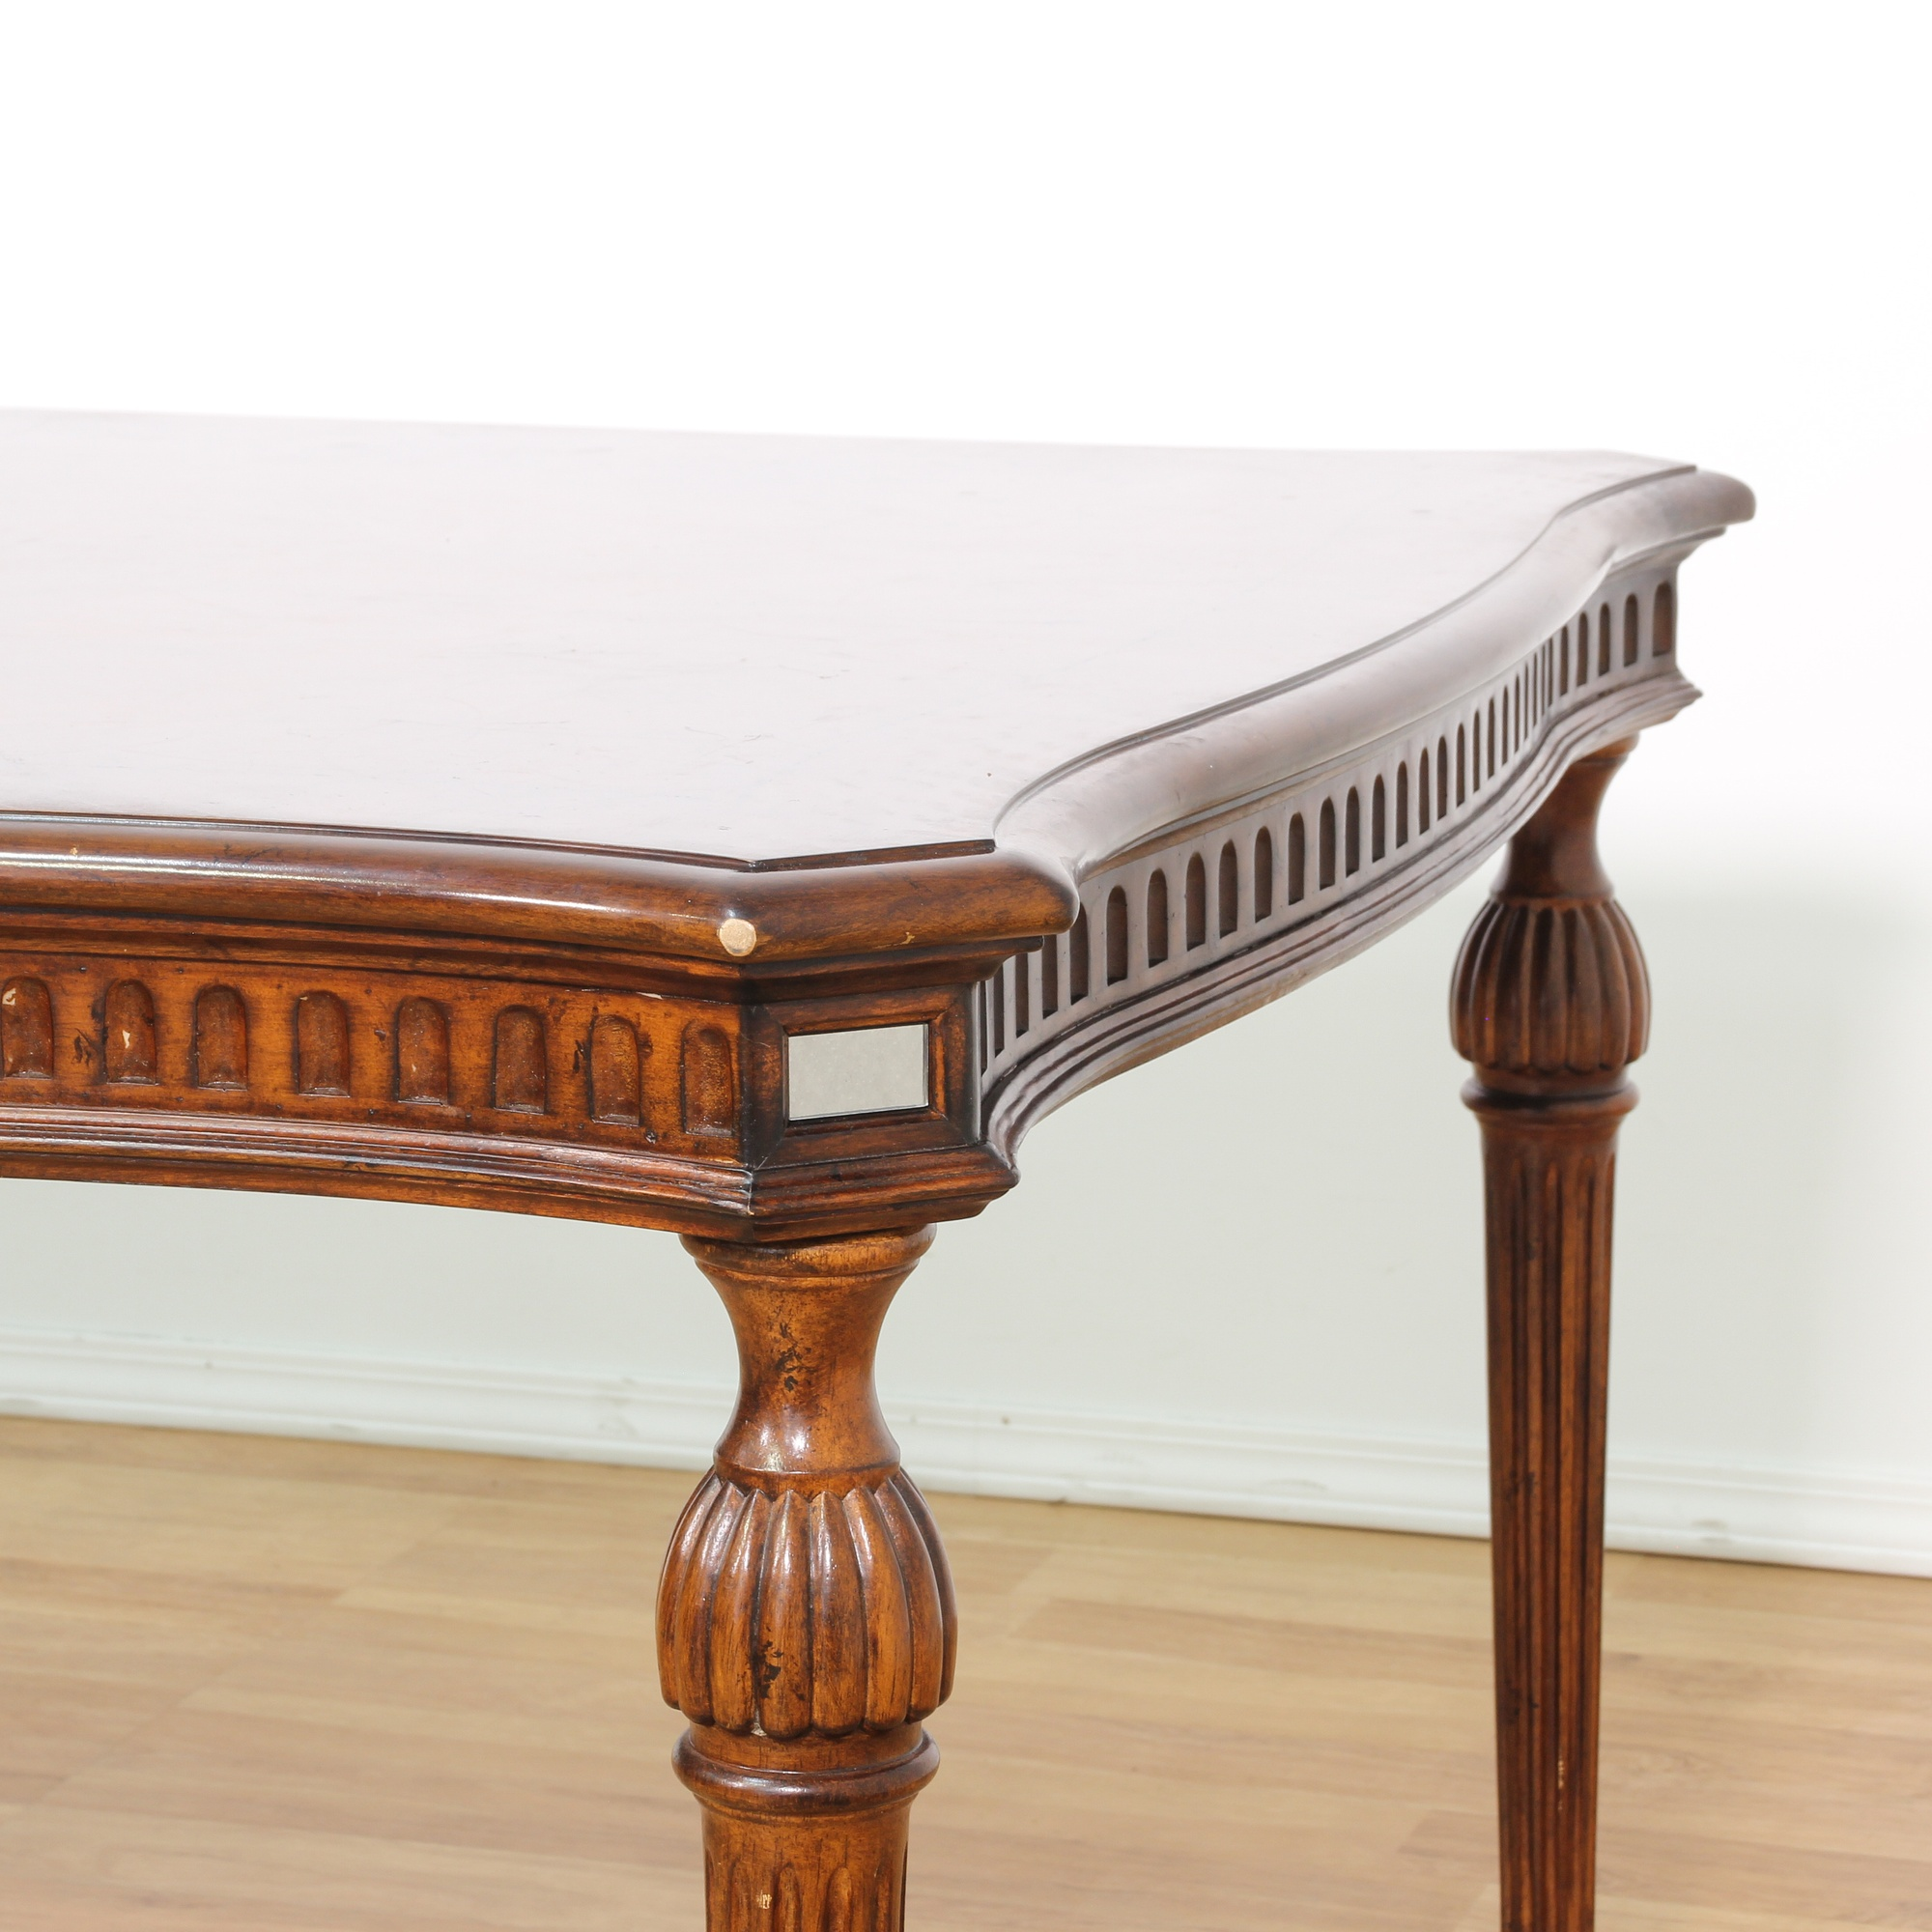 quotSouth Conequot Carved Mahogany Dining Table Loveseat  : convertw2000amph2000ampfitcropamprotateexif from www.loveseat.com size 2000 x 2000 jpeg 244kB